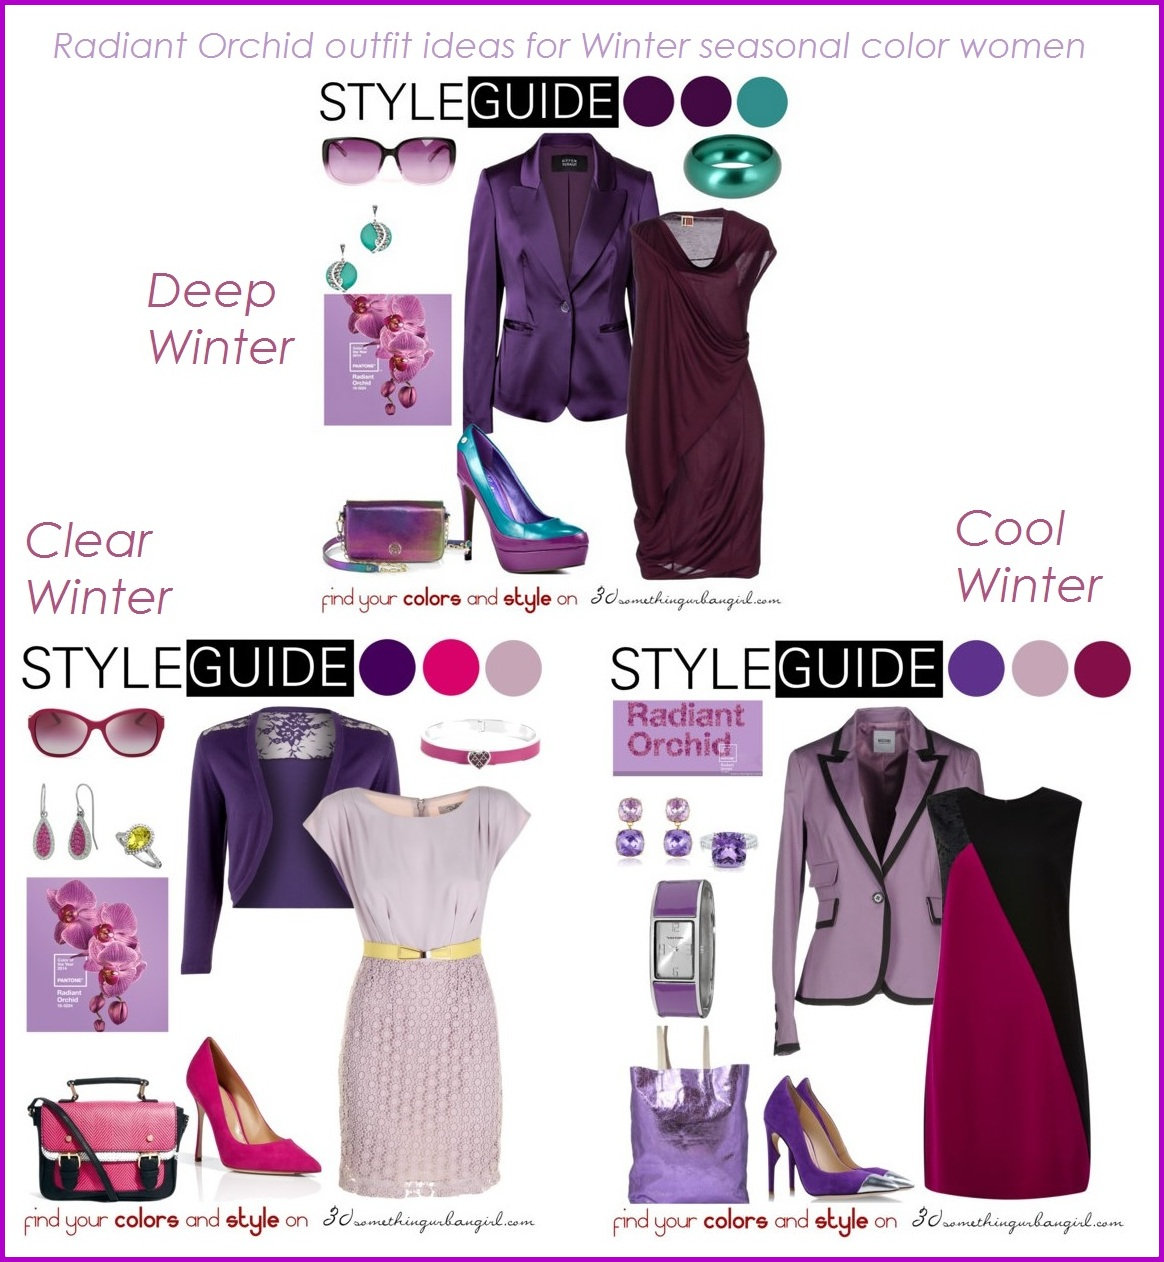 Radiant Orchid outfit ideas for Winter seasonal color women